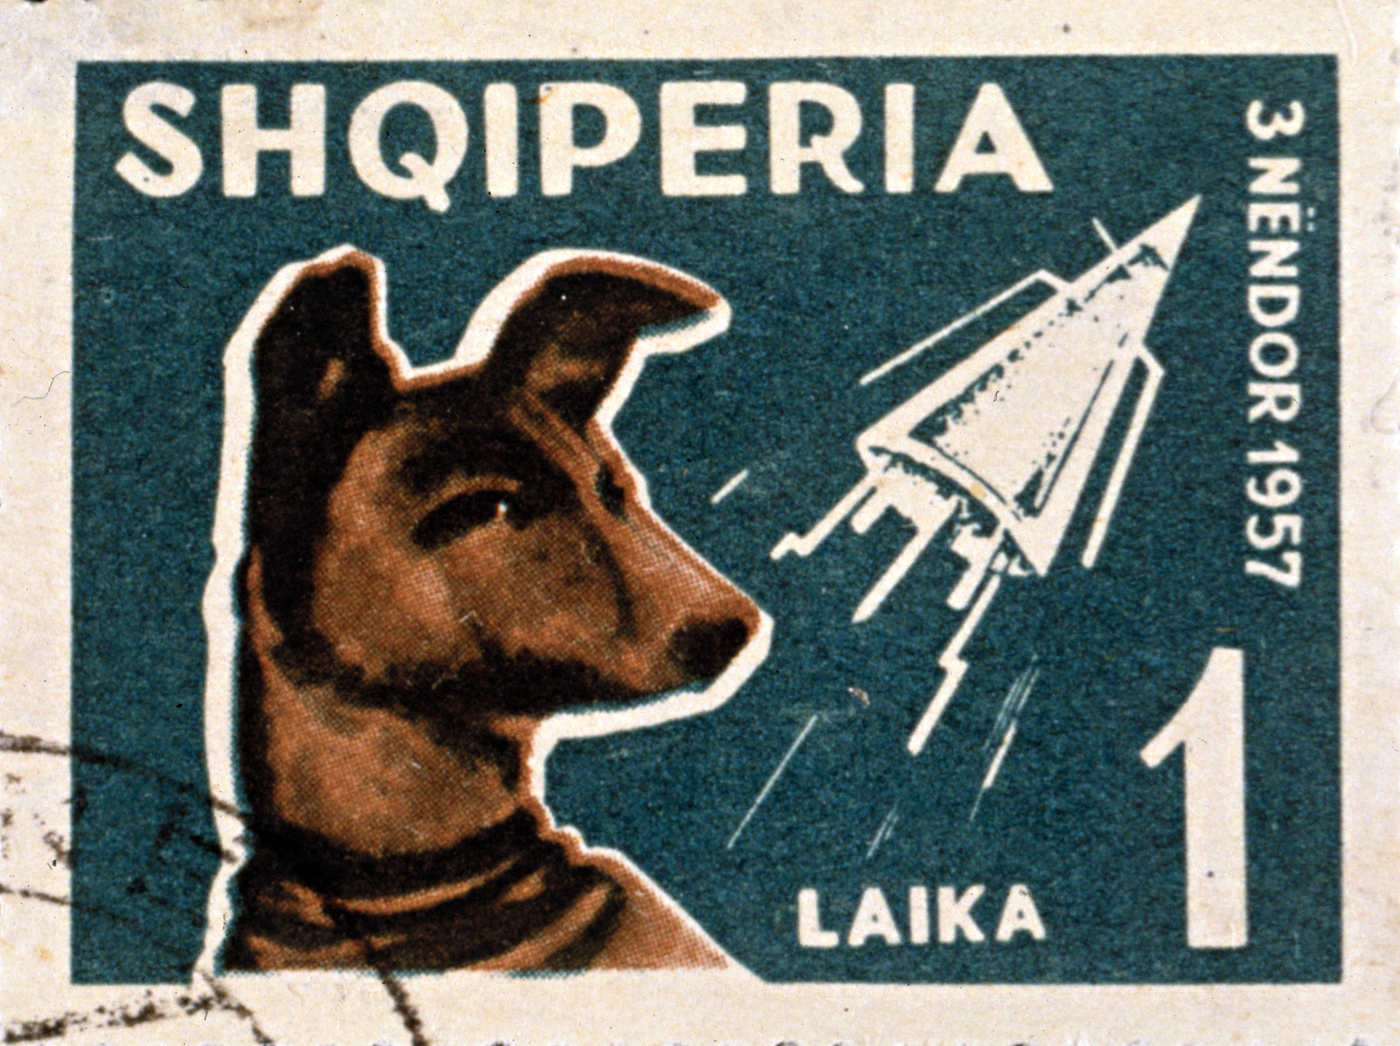 1957: An Albanian postage stamp depicting Laika, the dog sent into space on the Russian space satellite Sputnik. Shqiperia is the local name for Albania. (Photo by Blank Archives/Getty Images)